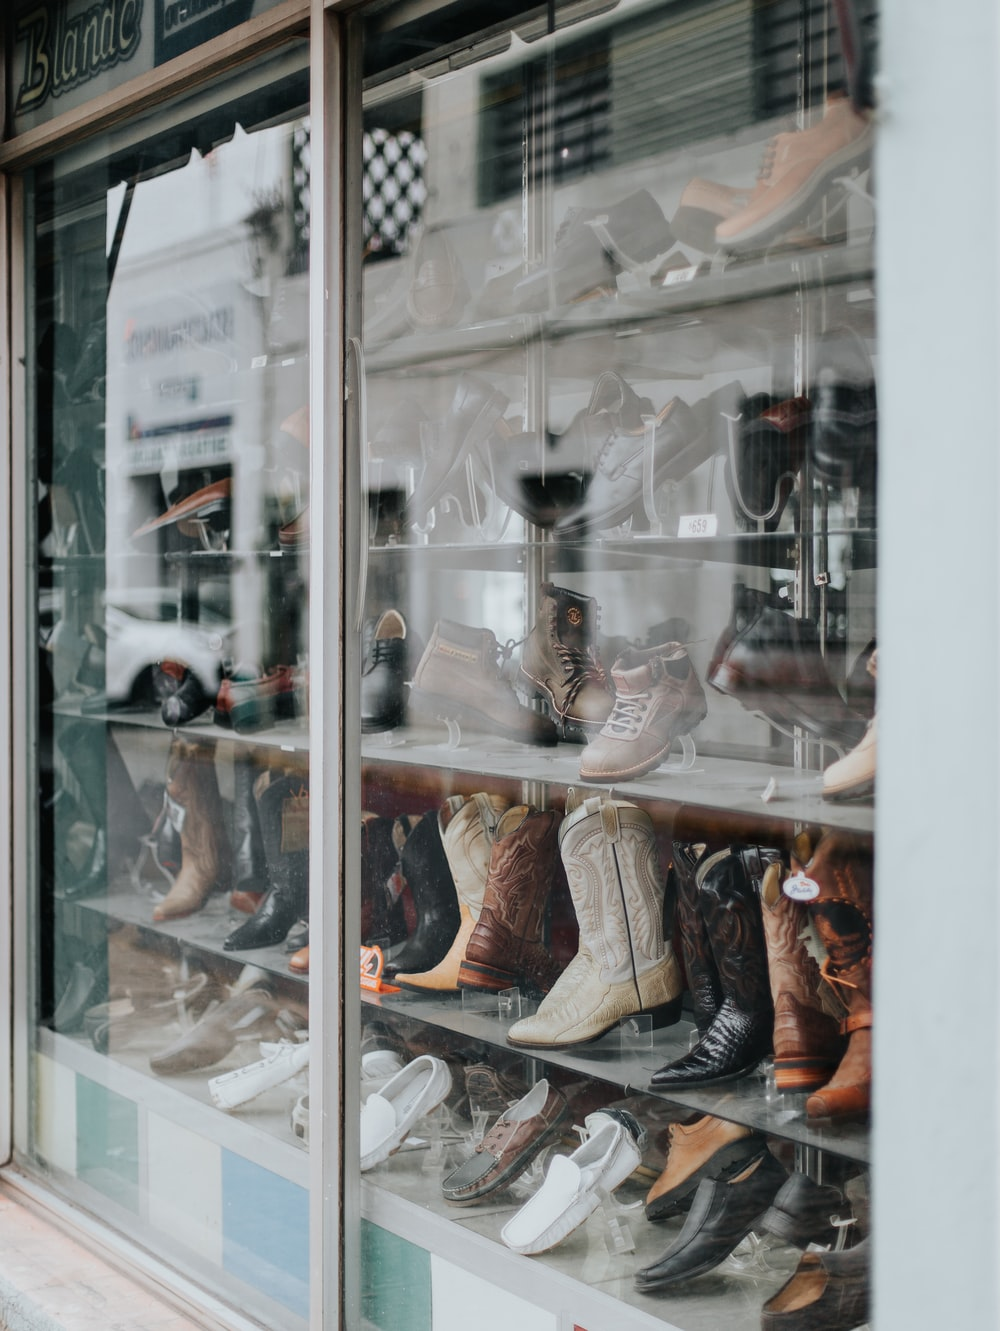 brown leather boots on display